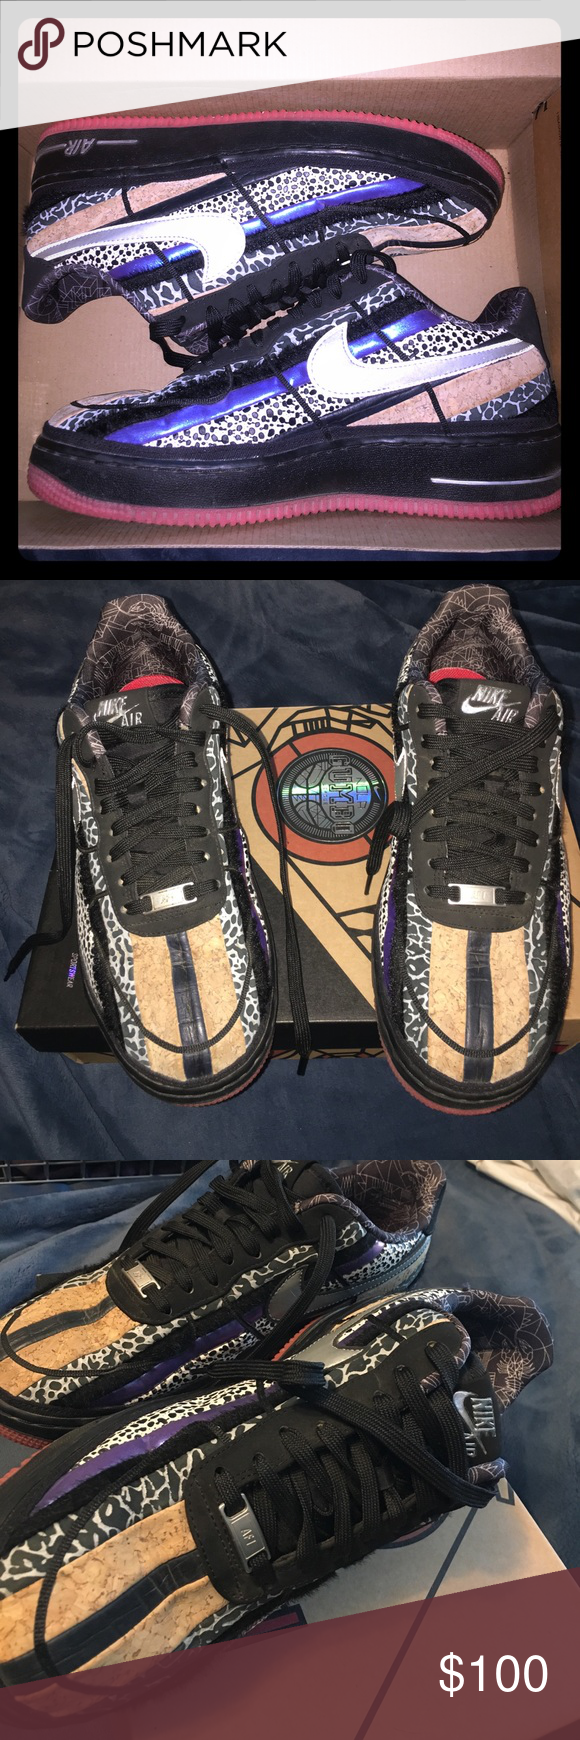 purchase cheap 3360a c62d8 Nike Air Force 1 low NOLA edition NBA Gumbo size 9 Size 9 men s , preowned  and comes with collectible box Nike Shoes Sneakers